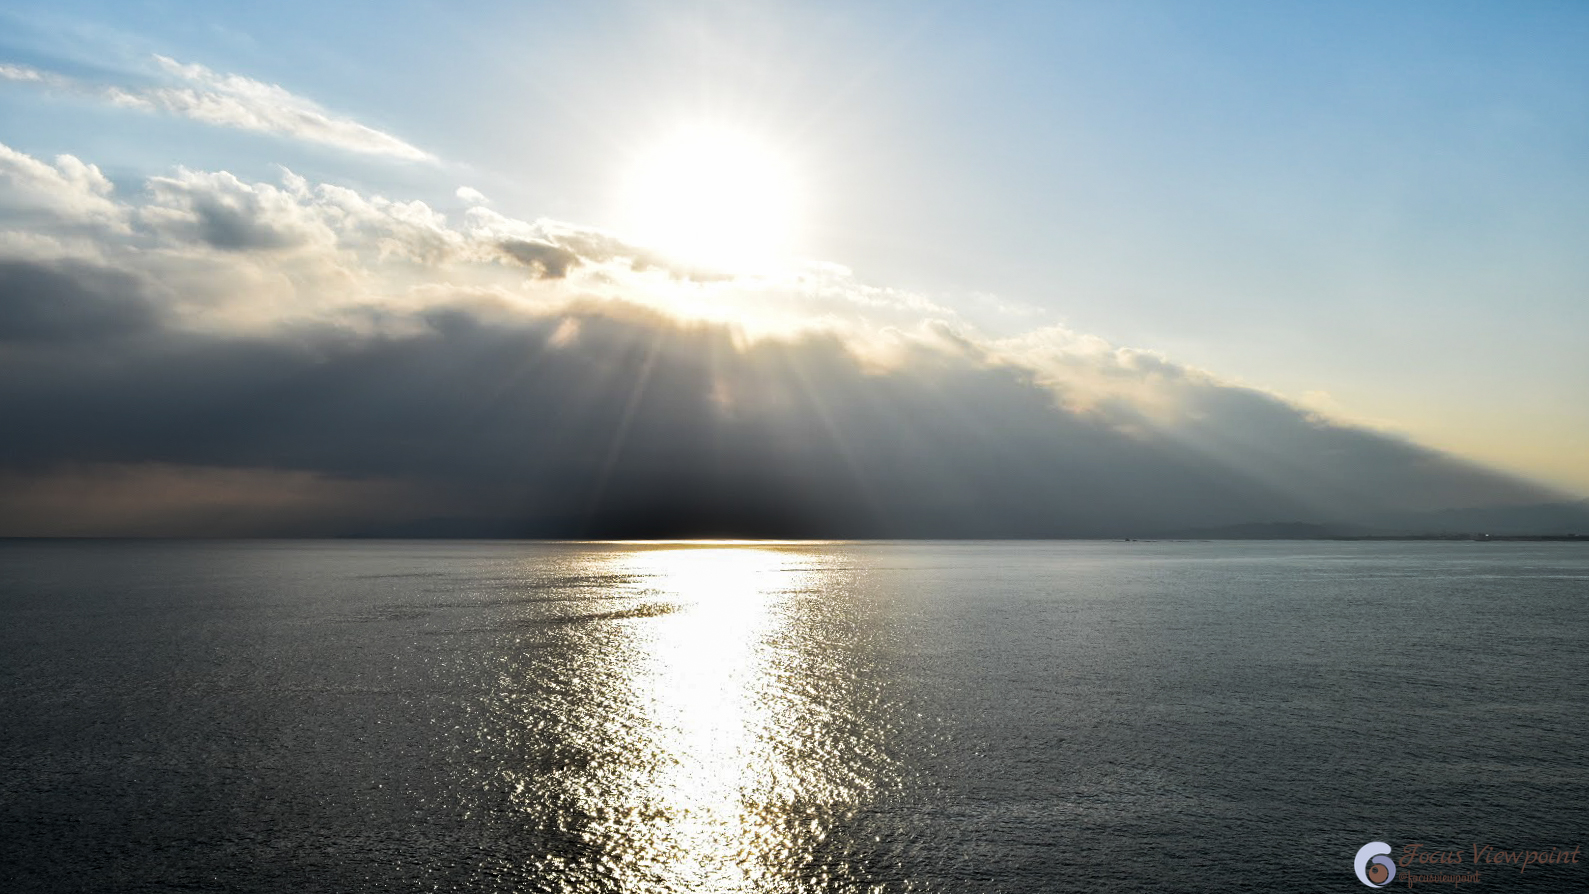 Sunrise behind the clouds at Enoshima, Japan : Focus Viewpoint